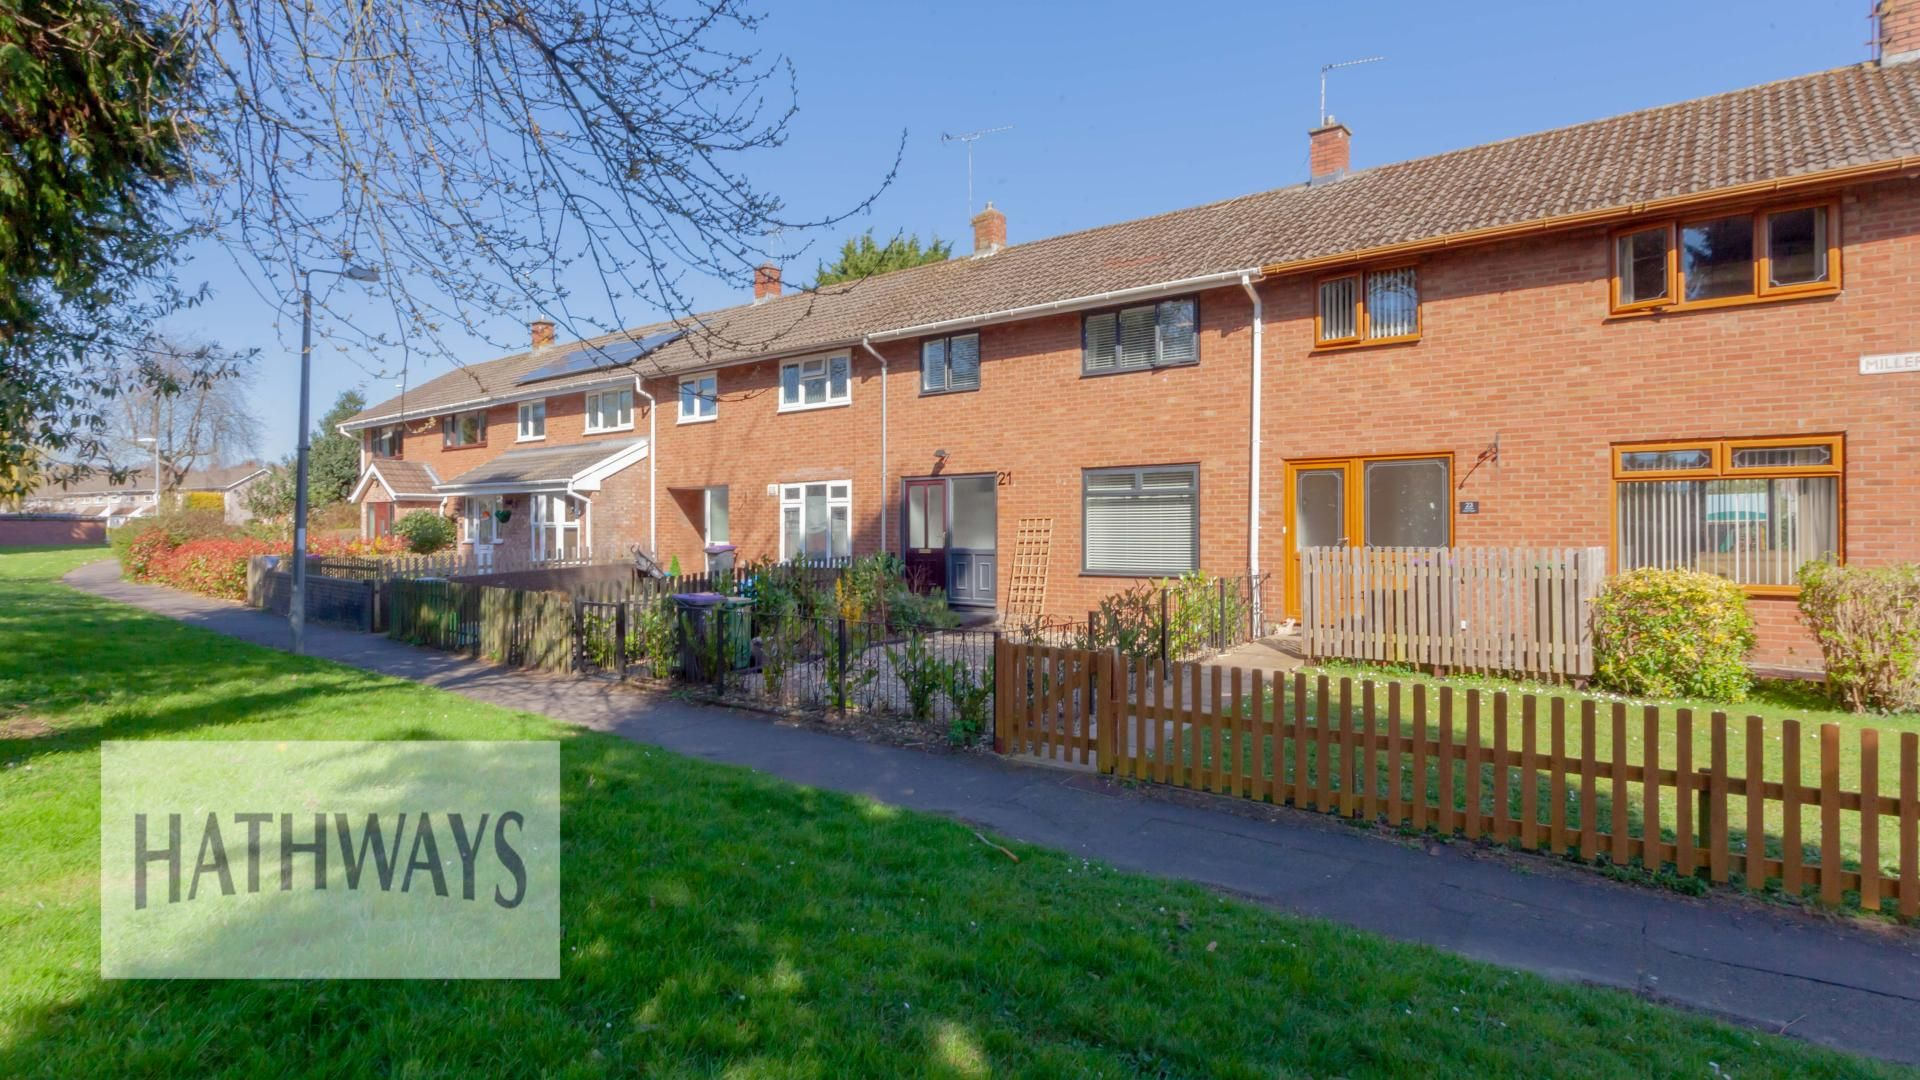 3 bed house for sale in Millers Ride, NP44